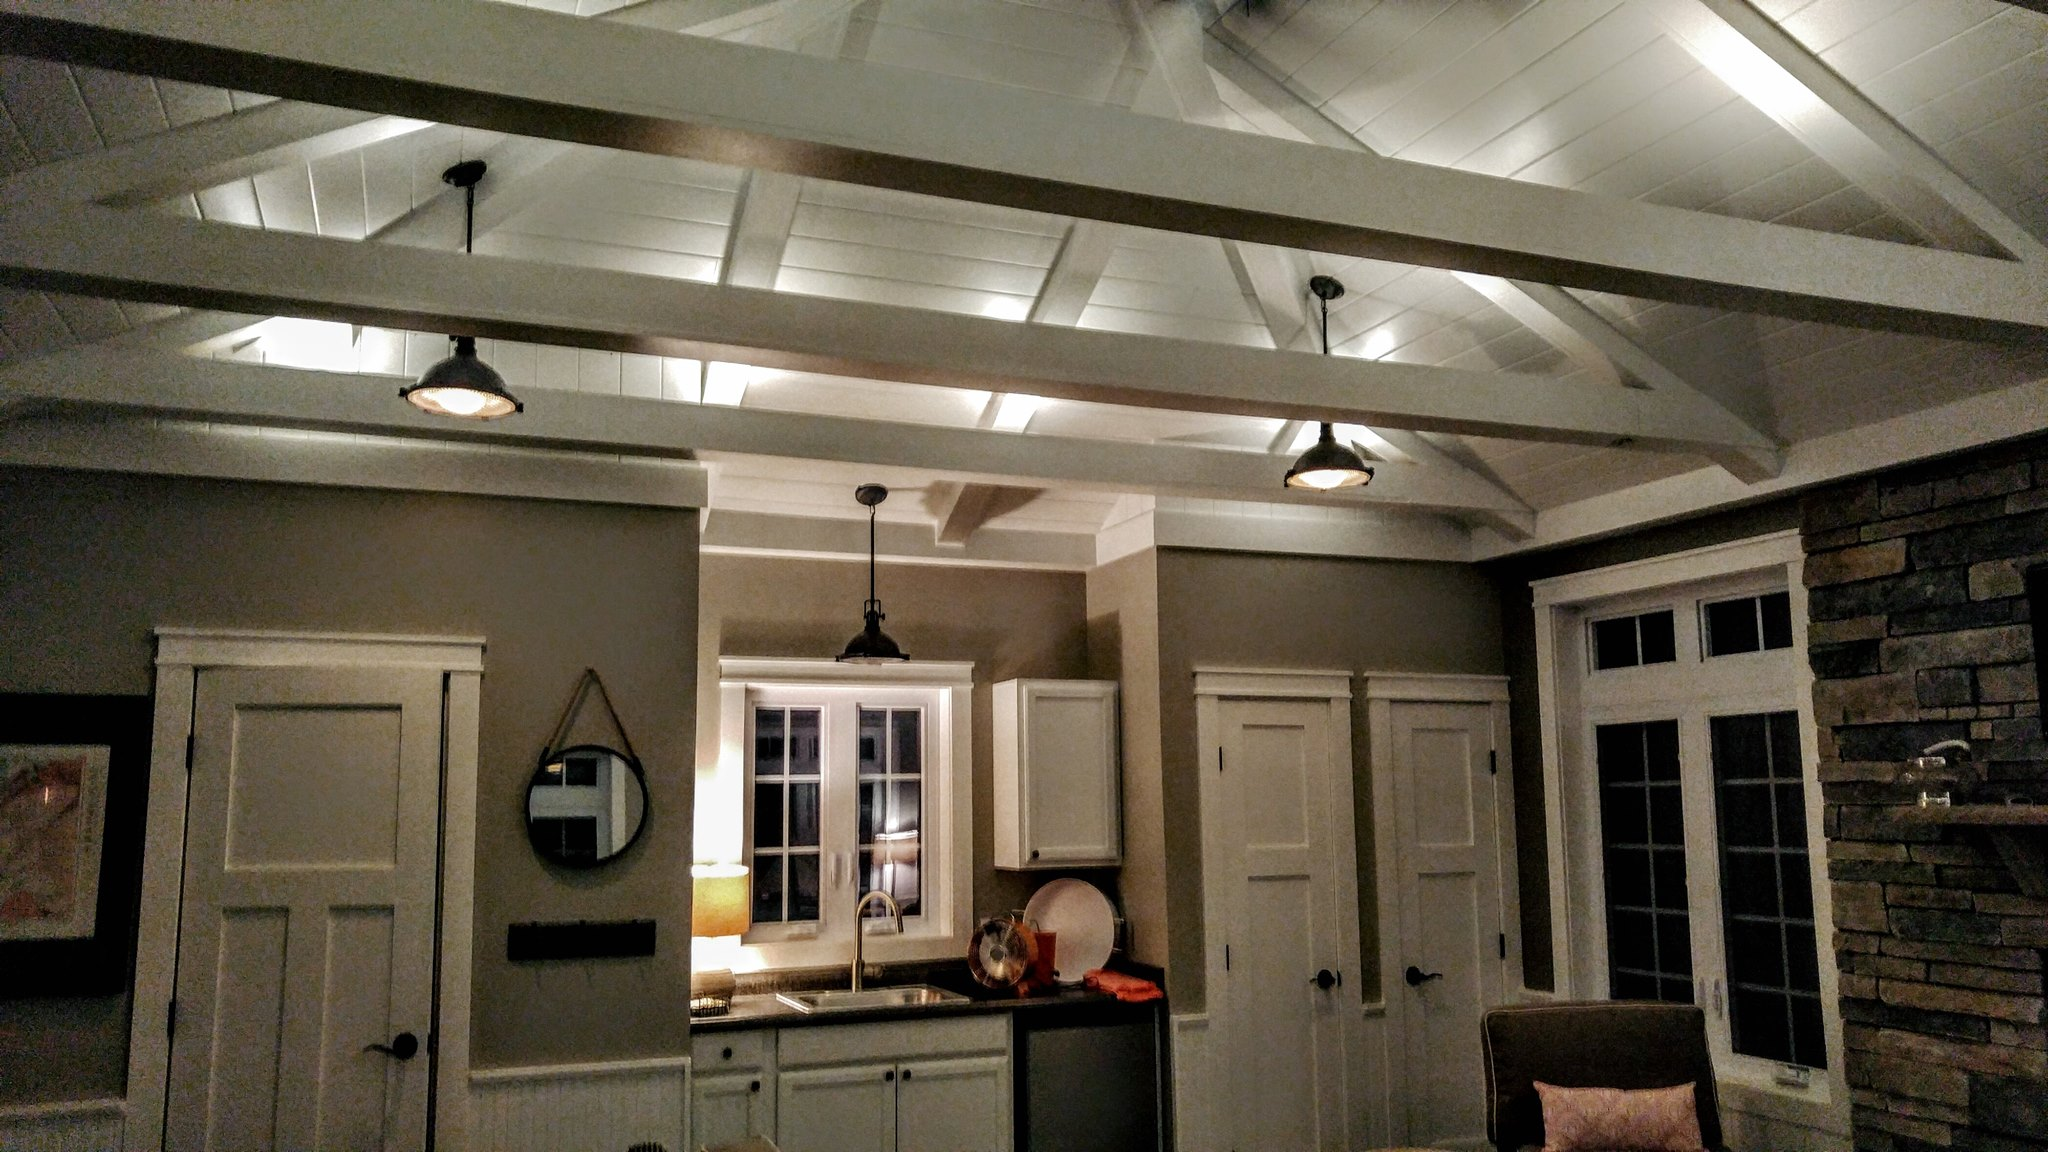 inside lighting. Pool House Lighting-inside And Out Inside Lighting A